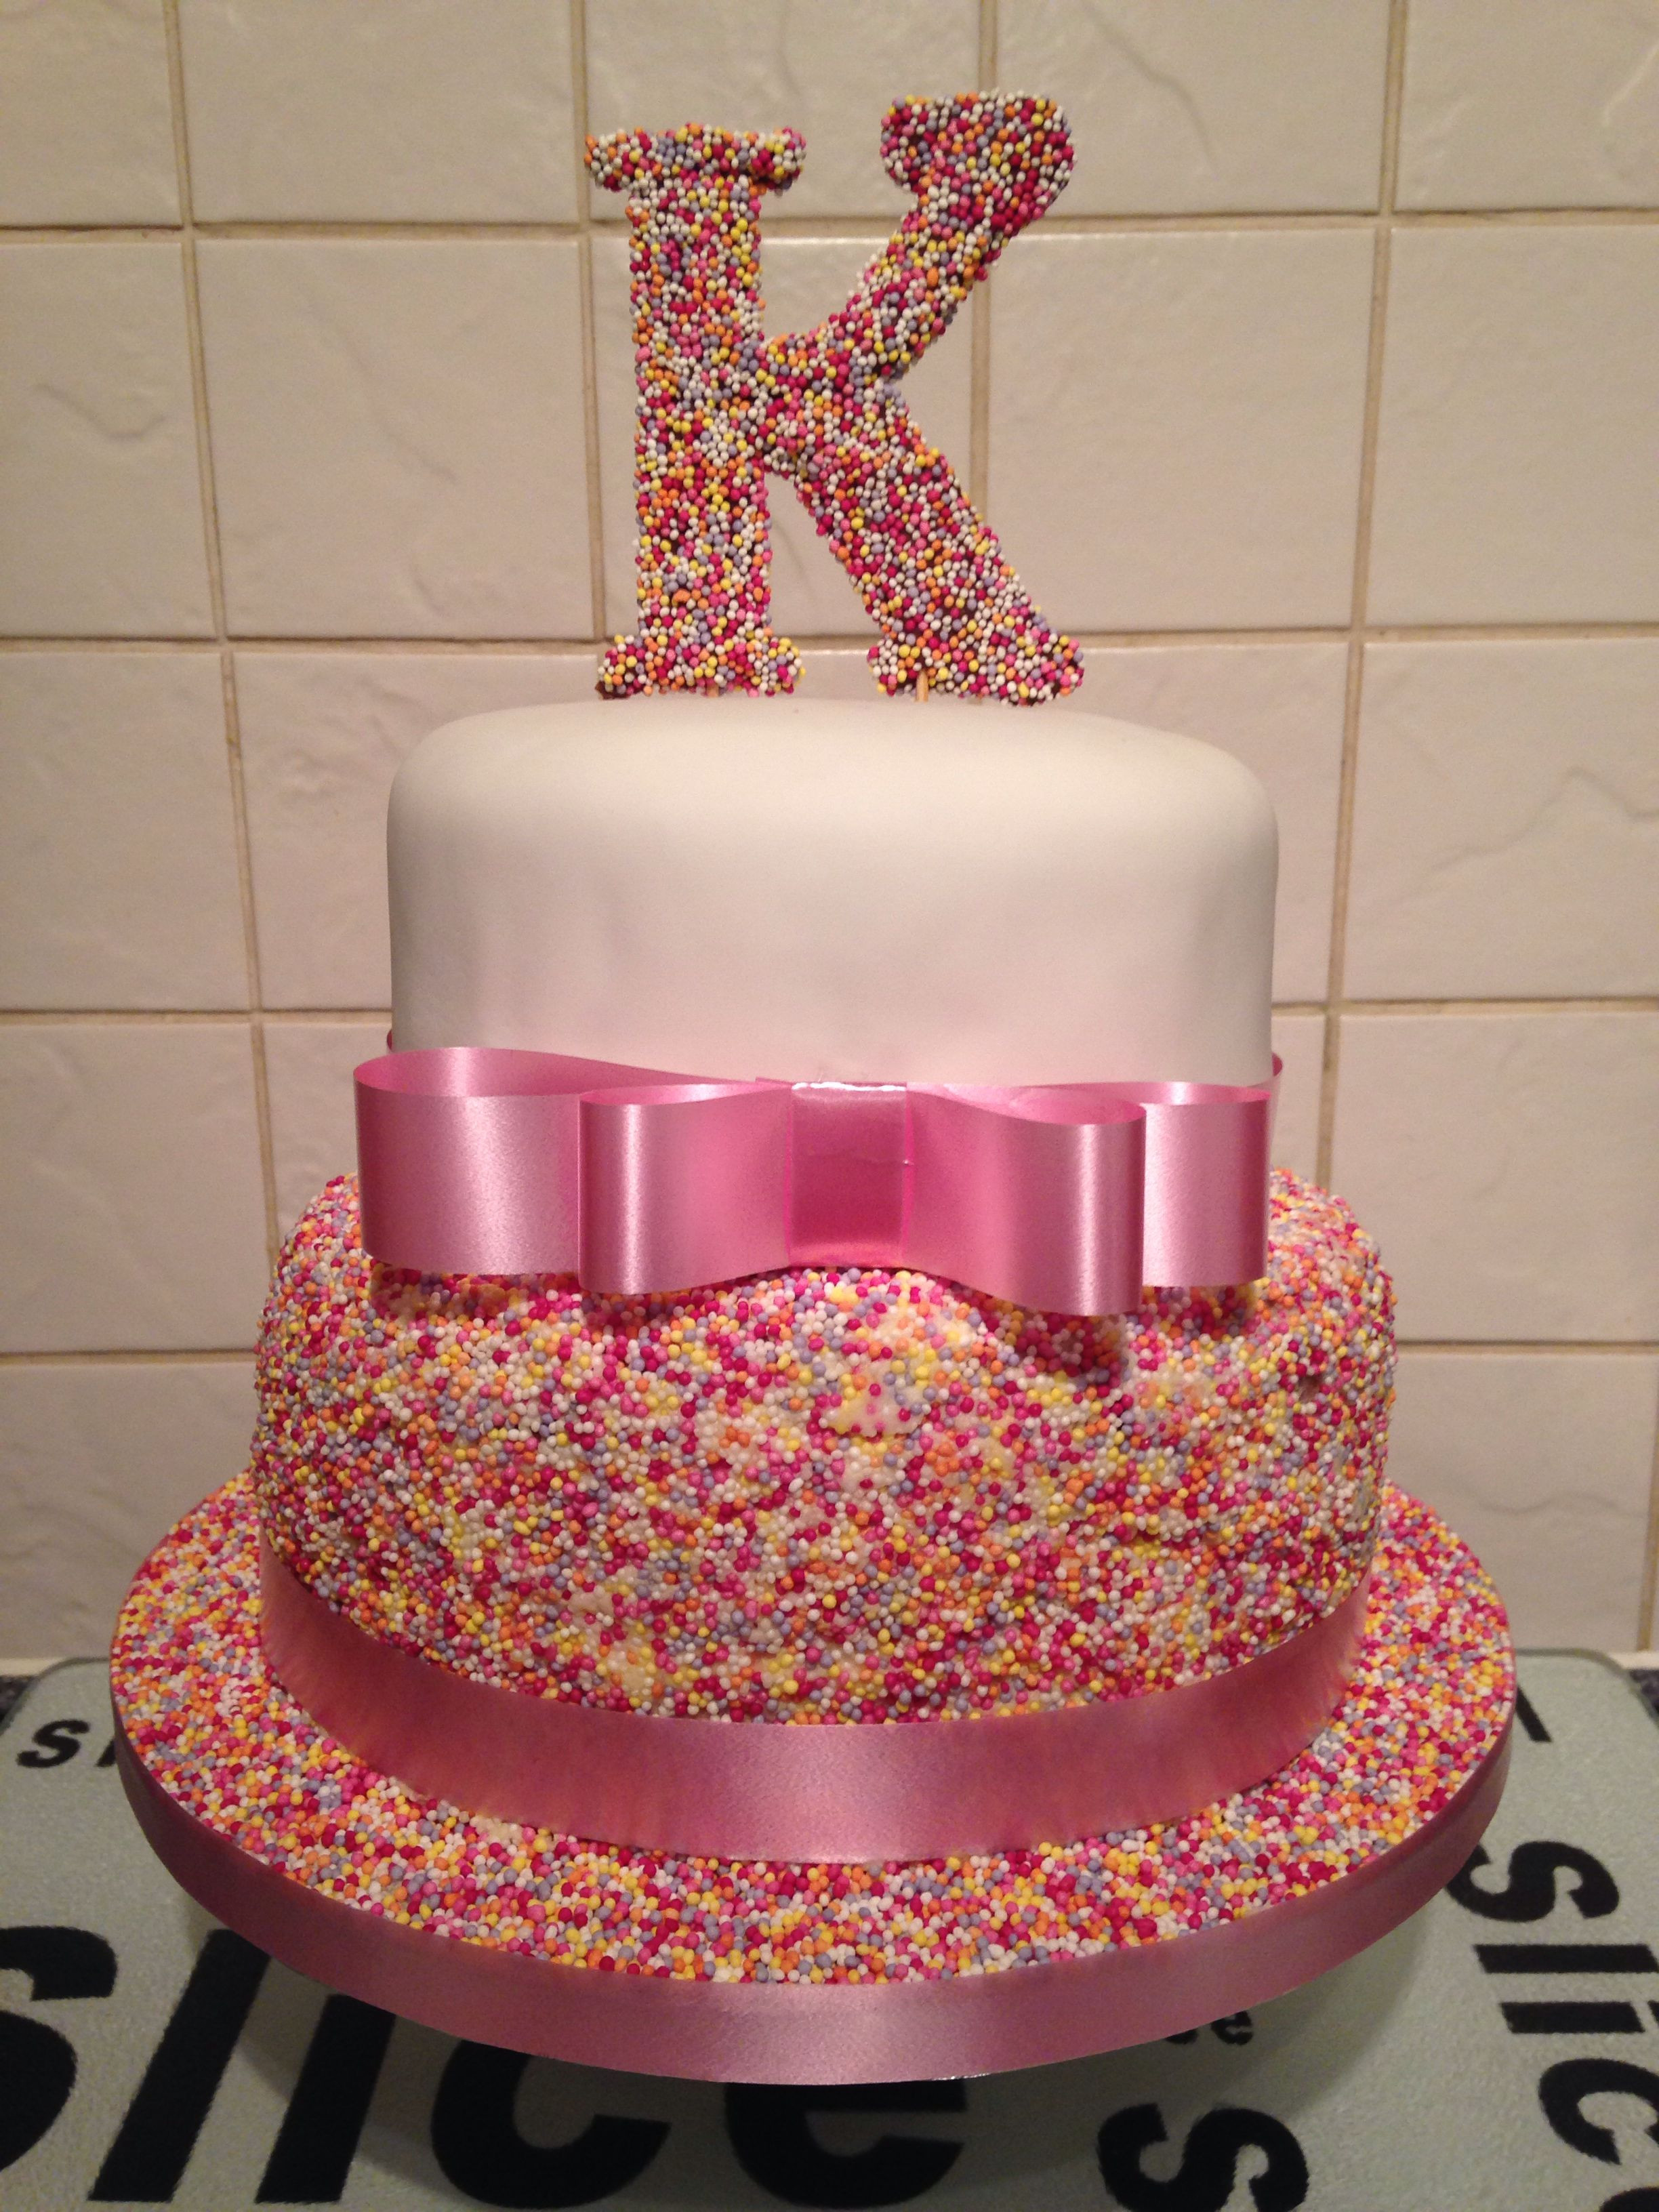 Best ideas about 2 Tier Birthday Cake . Save or Pin Girls 2 Tier Sprinkle 18th Birthday Cake Now.